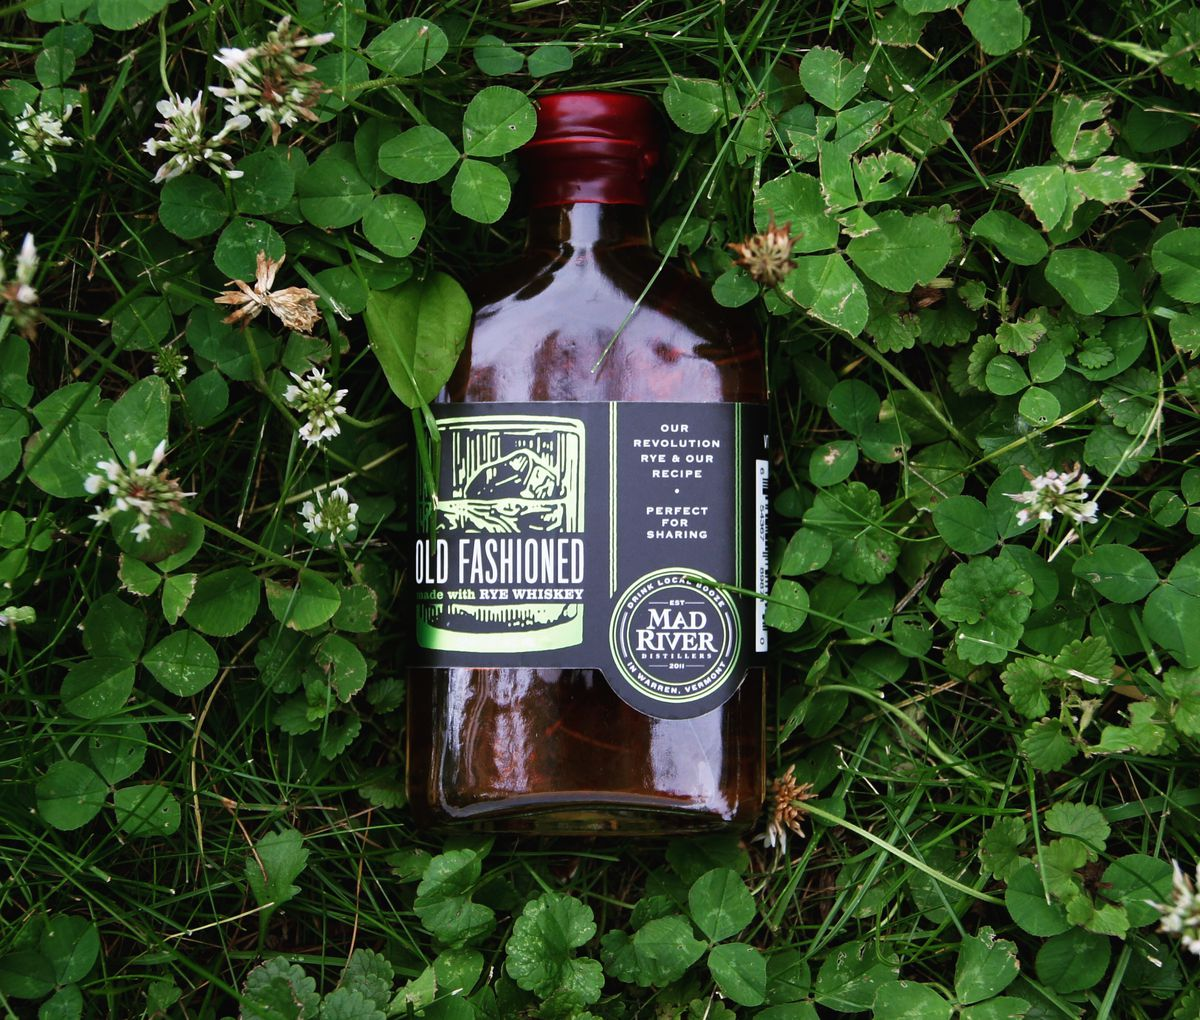 A glass bottle of a premixed Old Fashioned cocktail drink from Vermont's Mad River Distillers. The bottle lies on top of grass and clover.